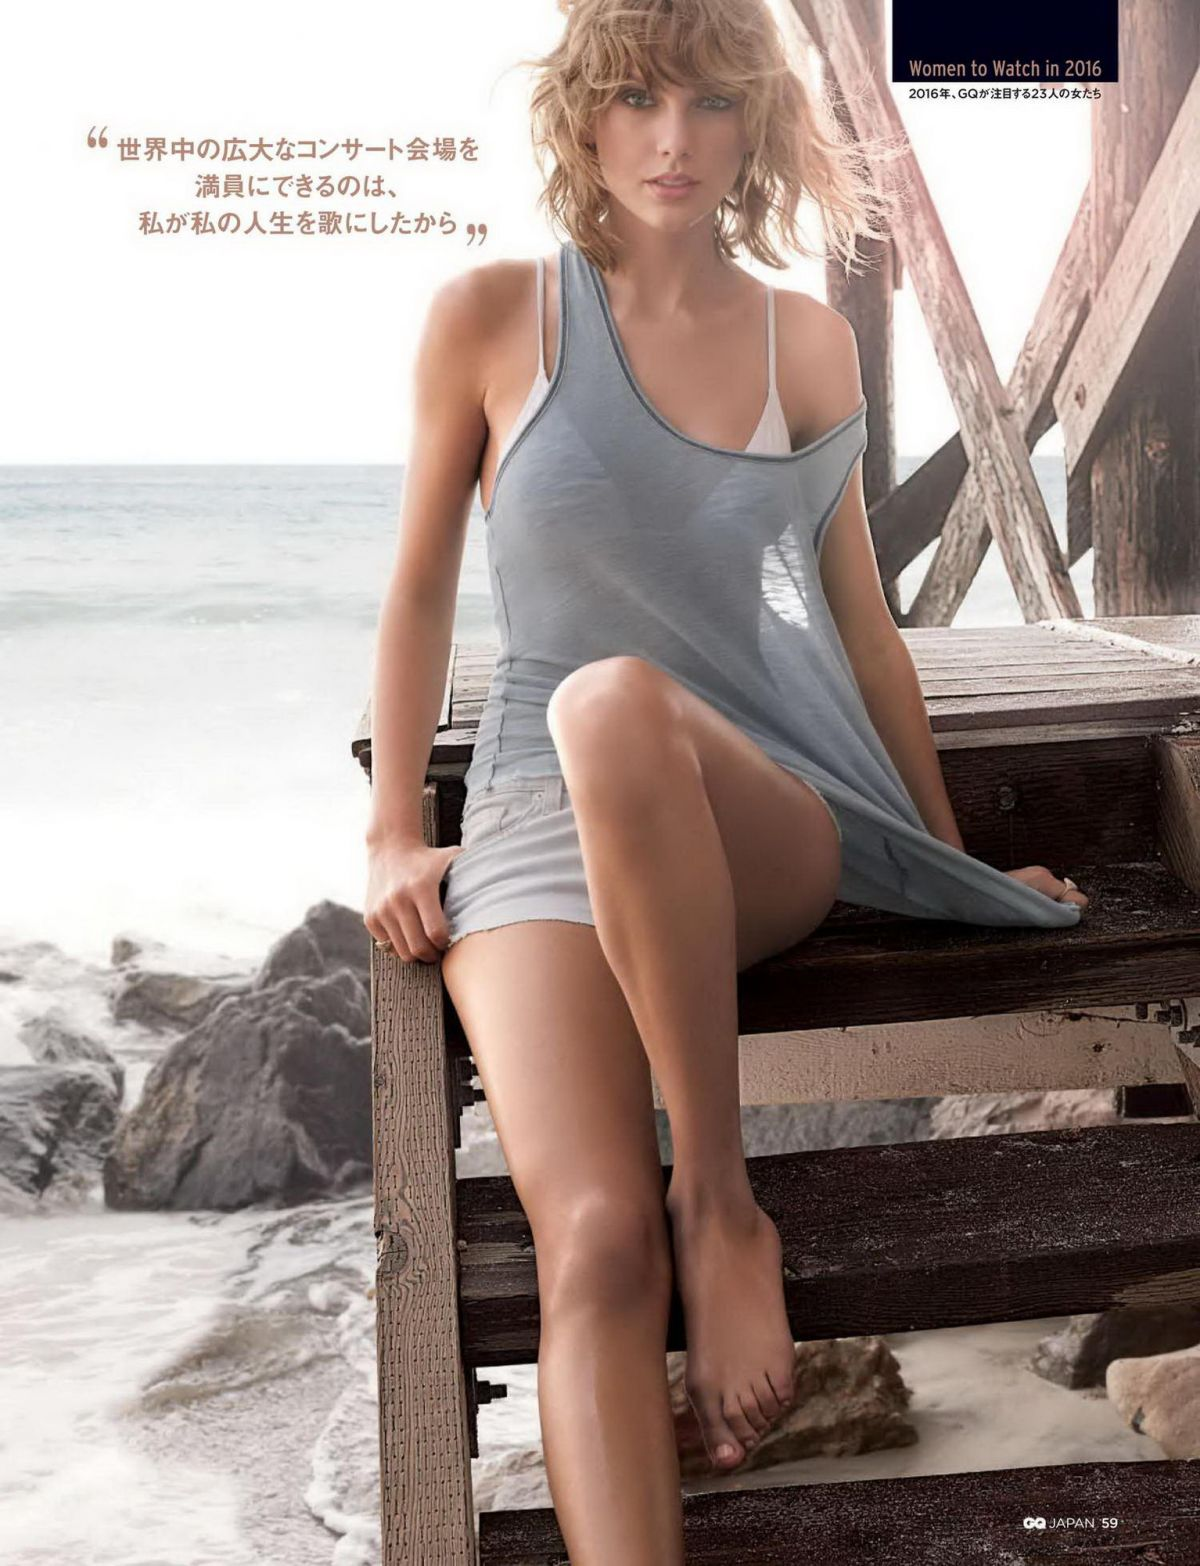 TAYLOR SWIFT in GQ Magazine, Japan February 2015 Issue